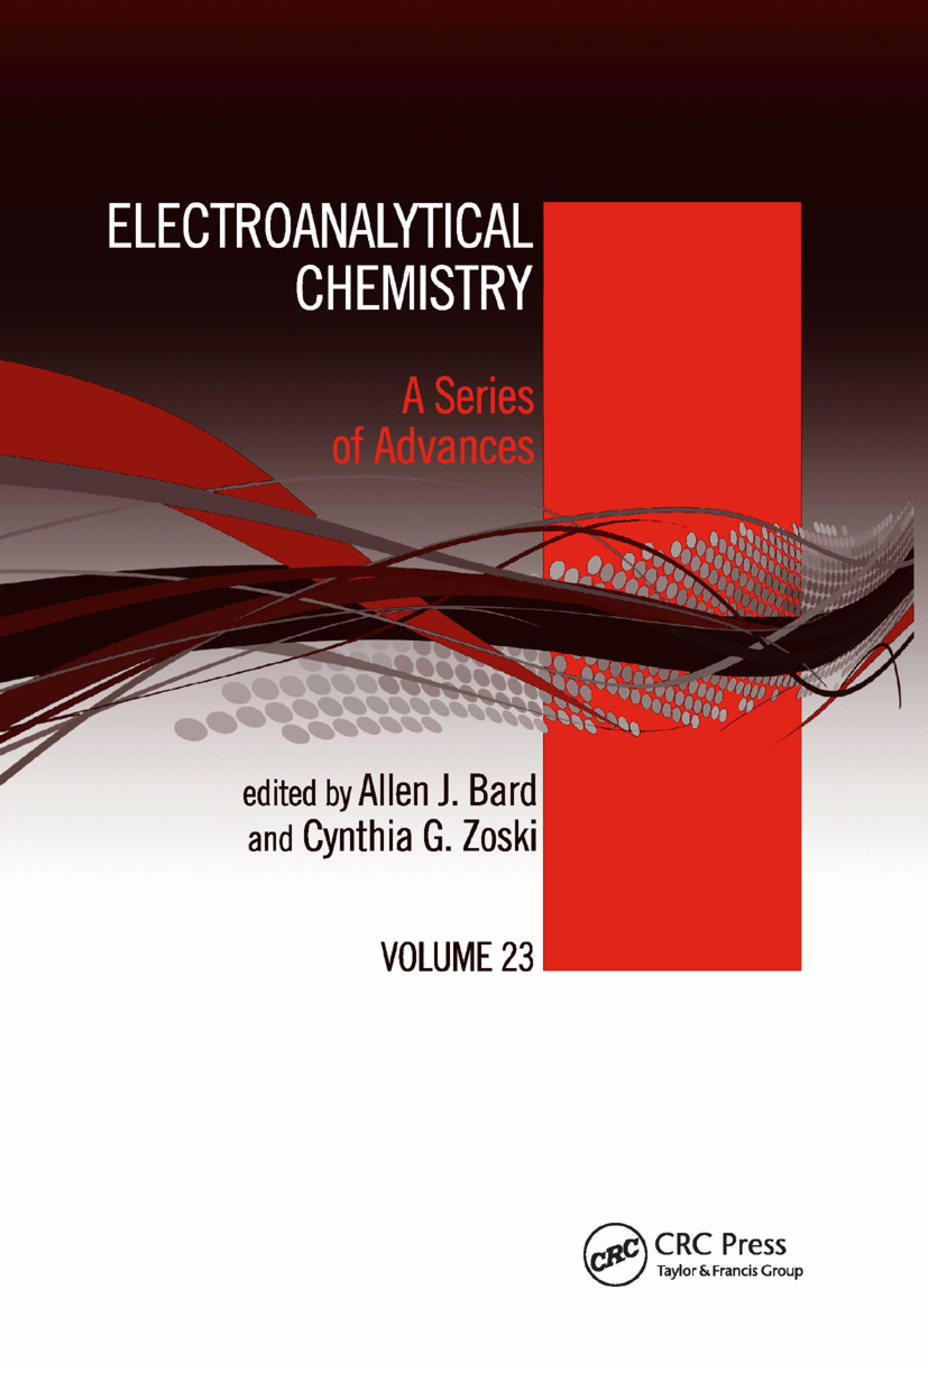 Electroanalytical Chemistry: A Series of Advances: Volume 23, 1st Edition (Paperback) book cover